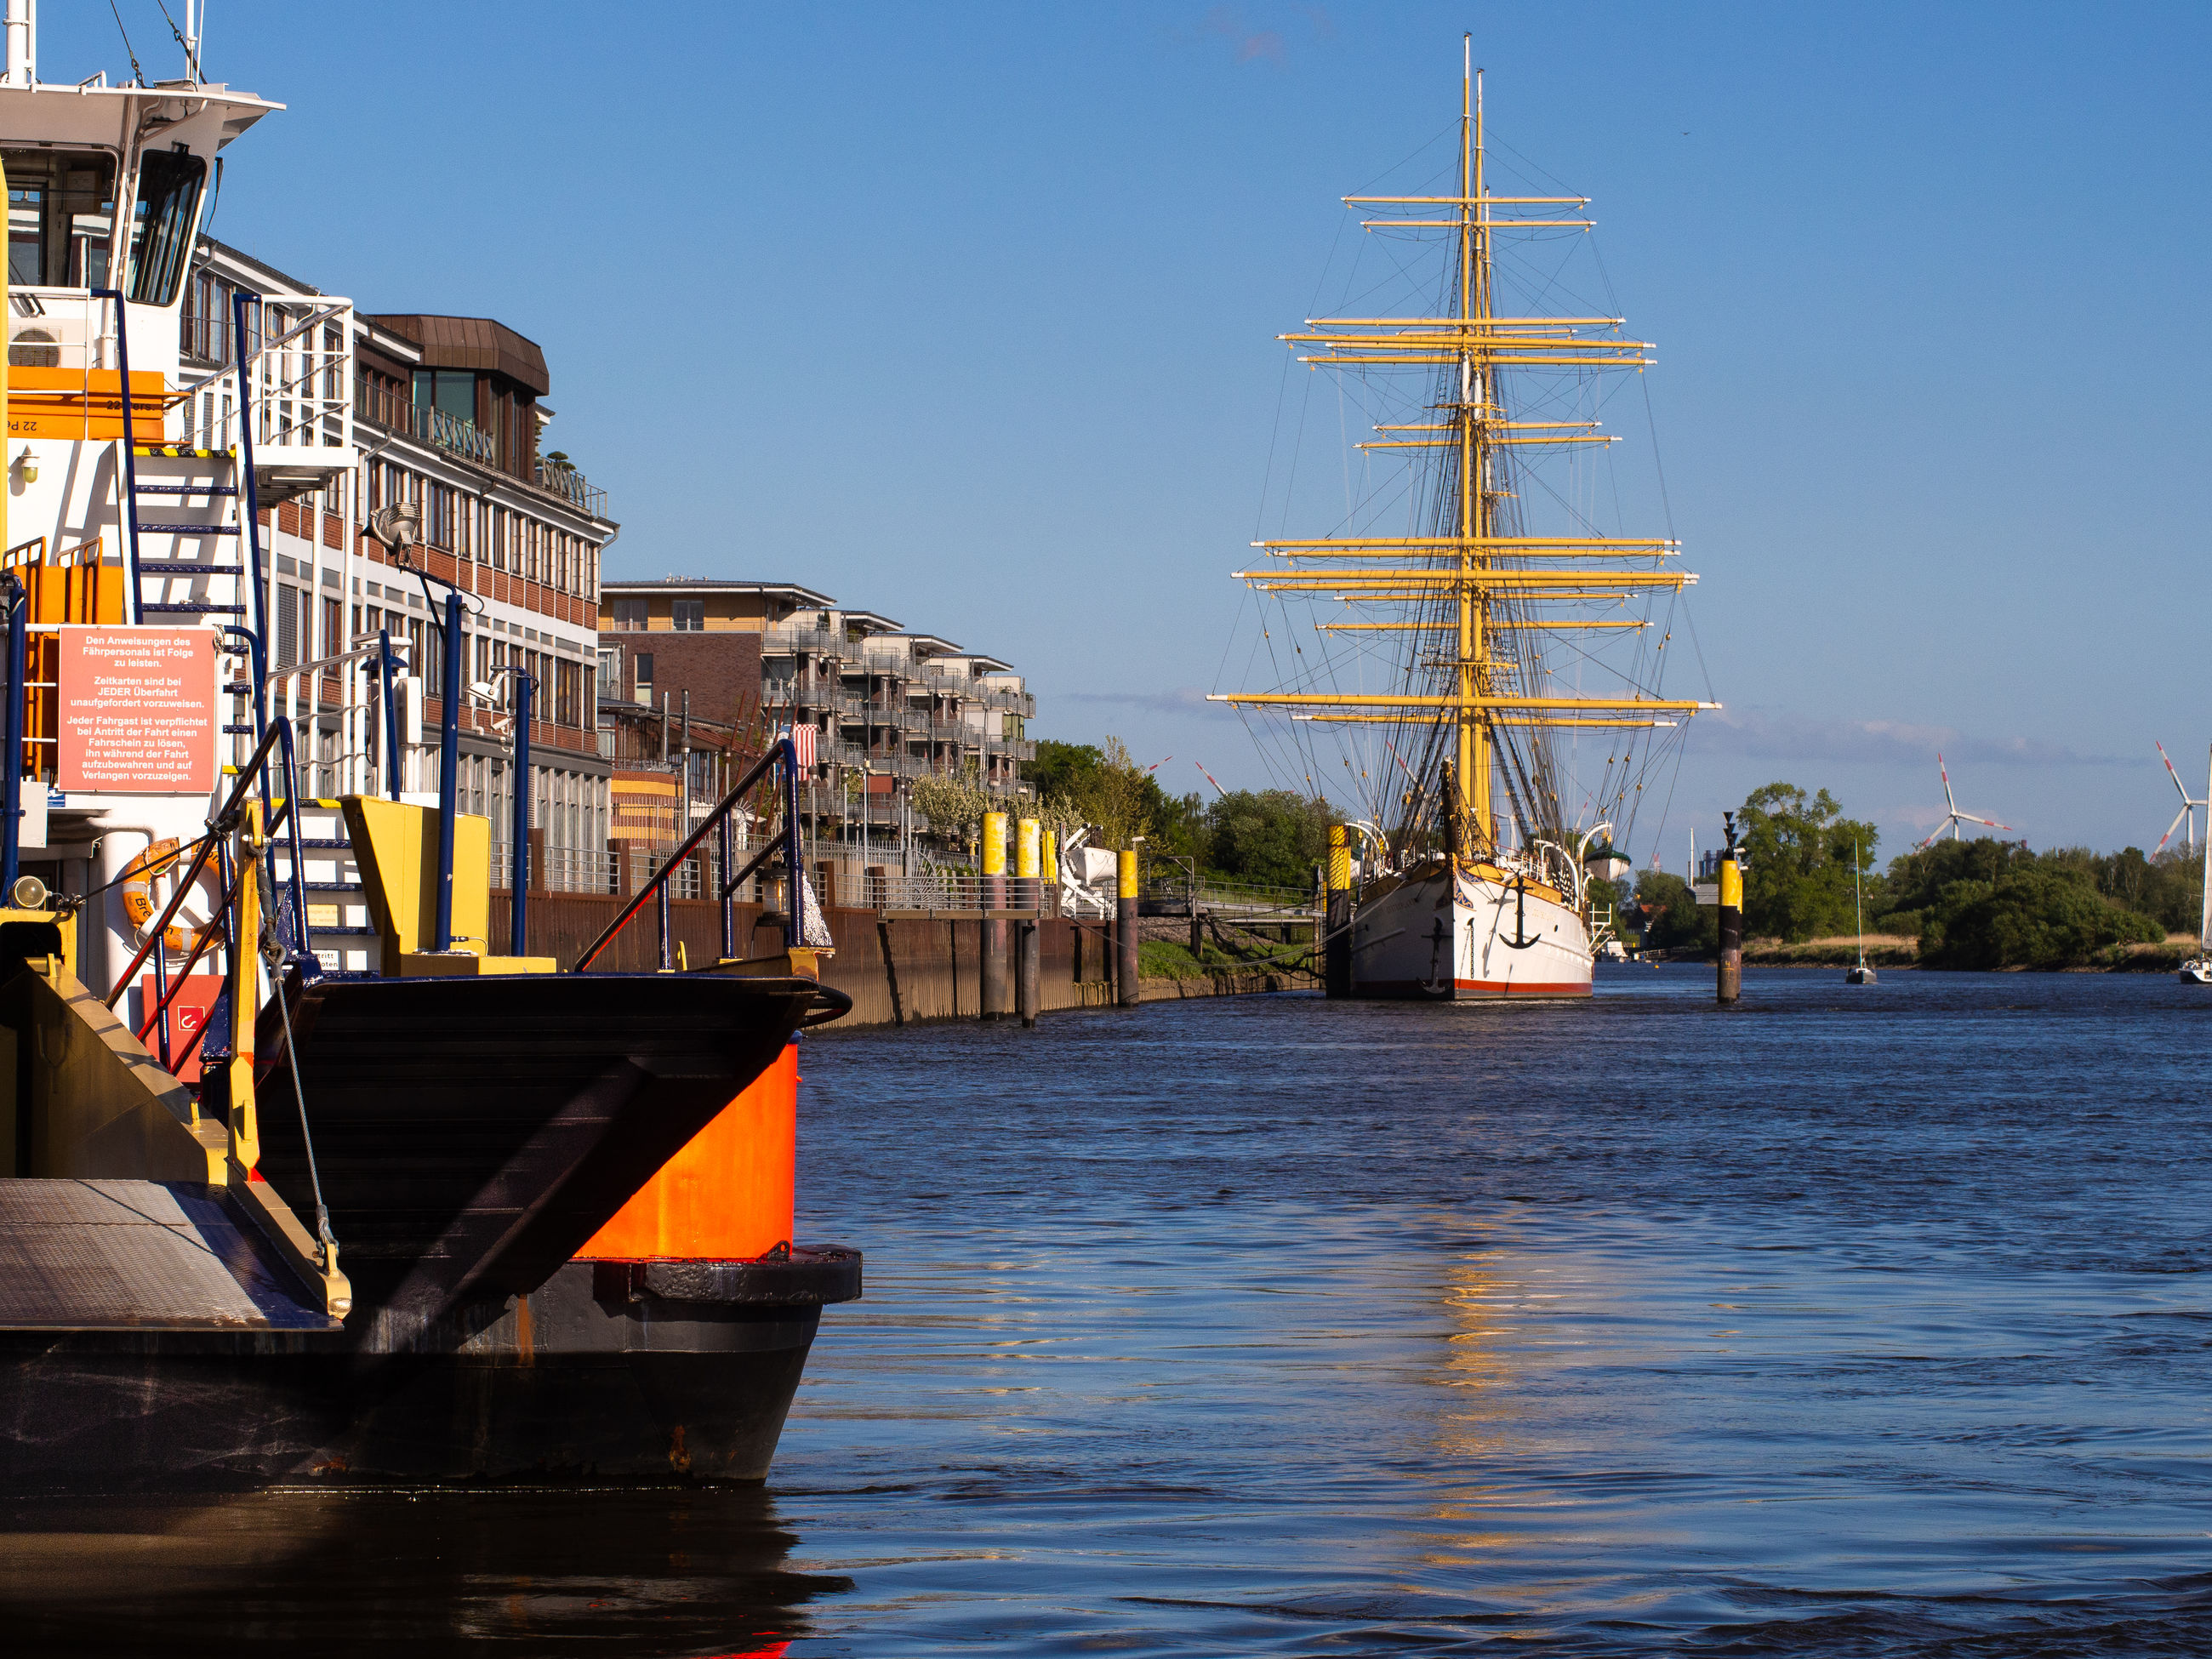 nautical vessel, water, transportation, mode of transportation, built structure, architecture, sky, nature, waterfront, sailboat, building exterior, no people, moored, mast, day, clear sky, sea, harbor, outdoors, port, anchored, fishing boat